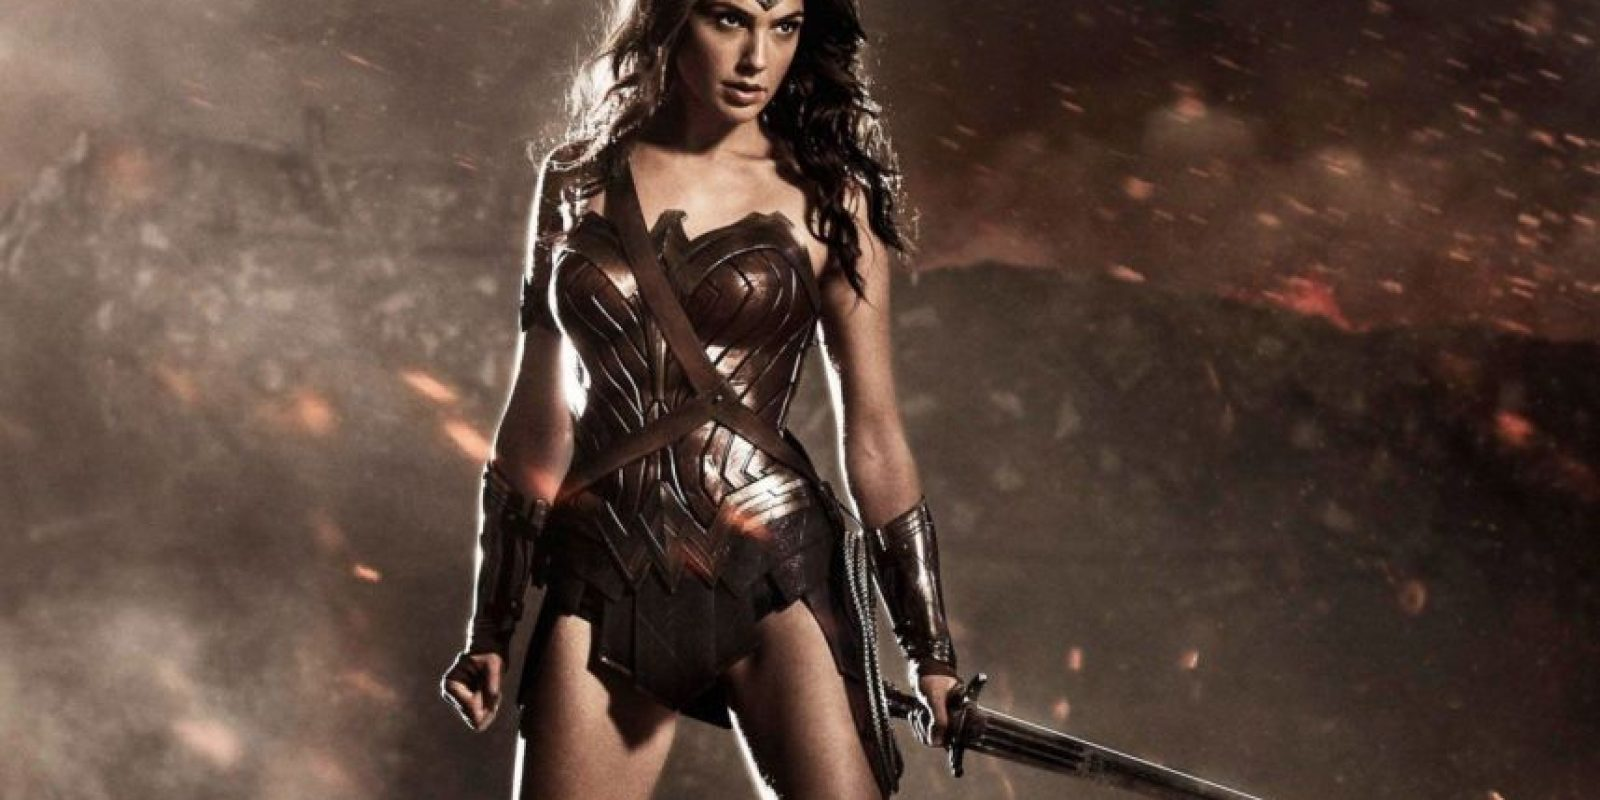 """Wonder Woman"", posible fecha de estreno: 23 de junio de 2017. Foto: DC Entertainment"